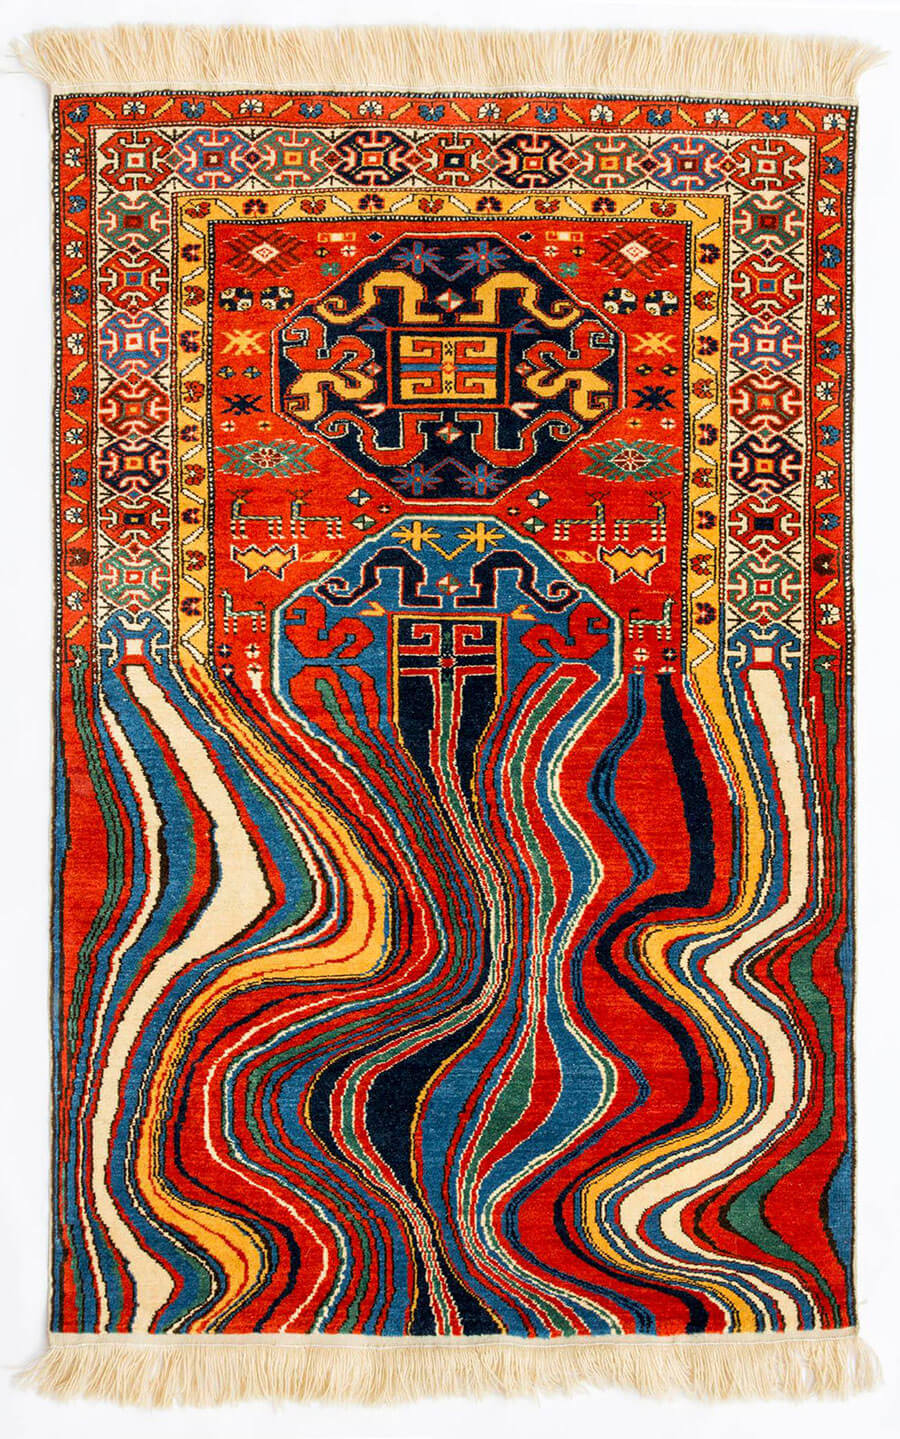 Woven Rugs by FAIG AHMED 10 (1)